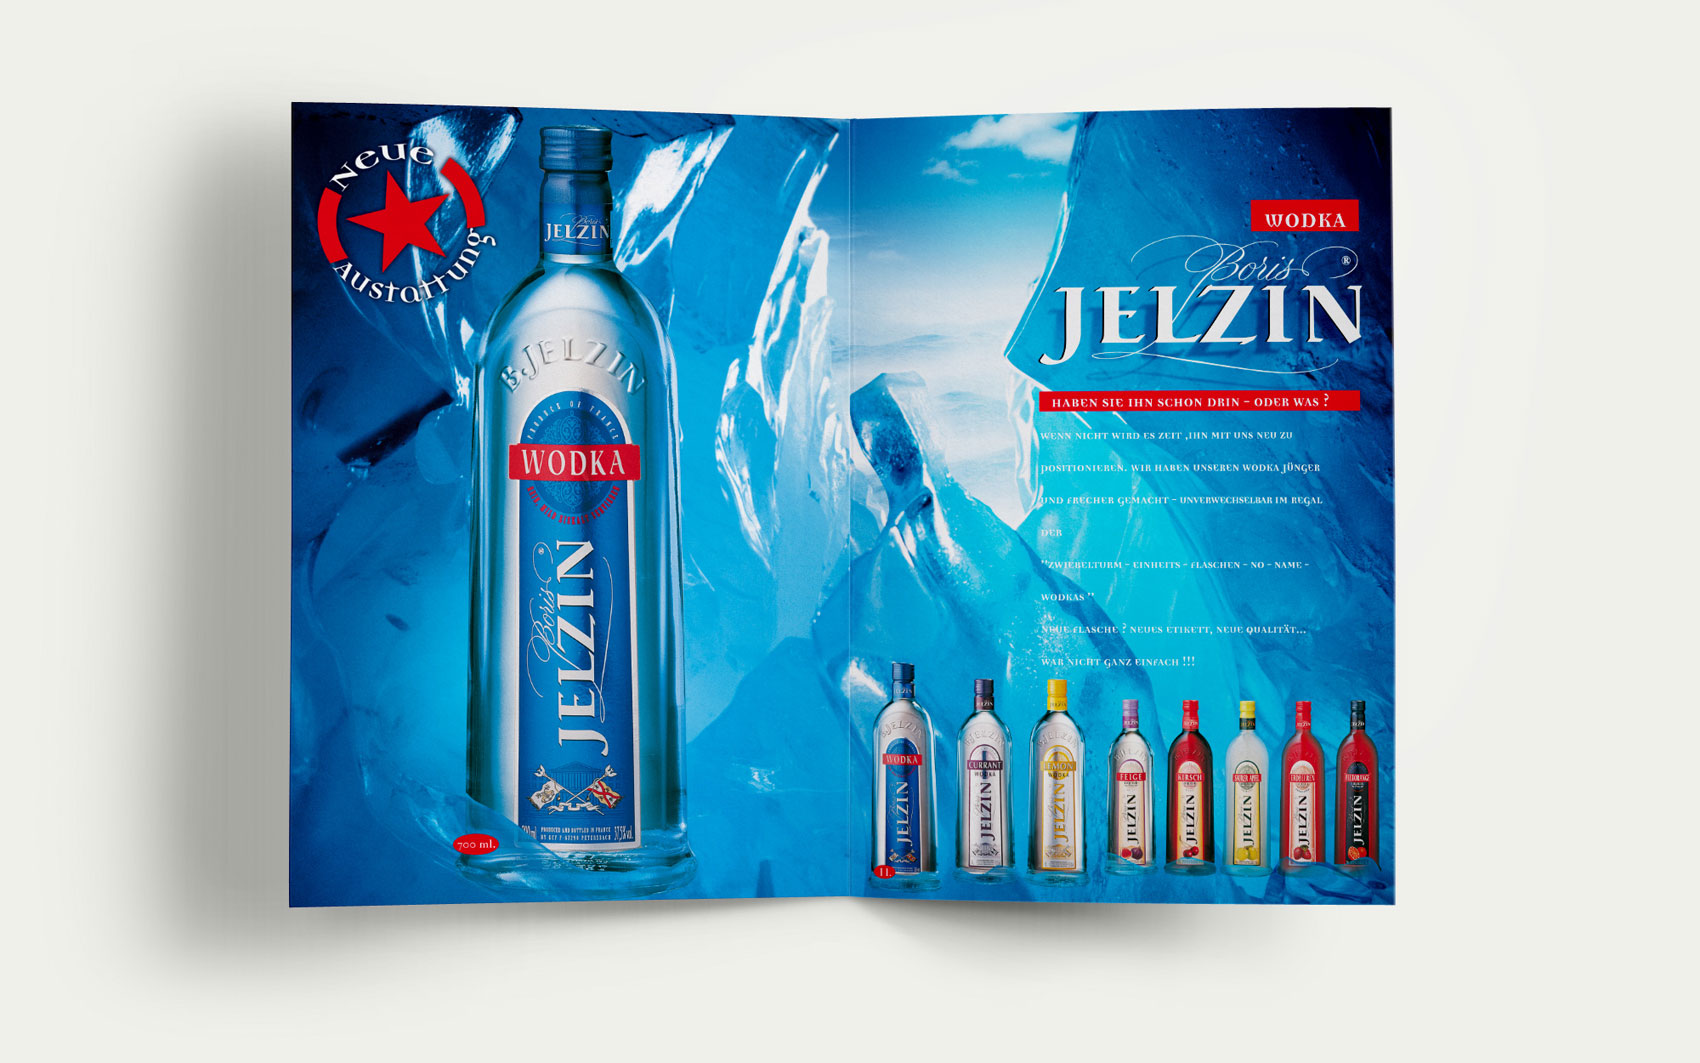 vodka-boris-jelzin-comm-2